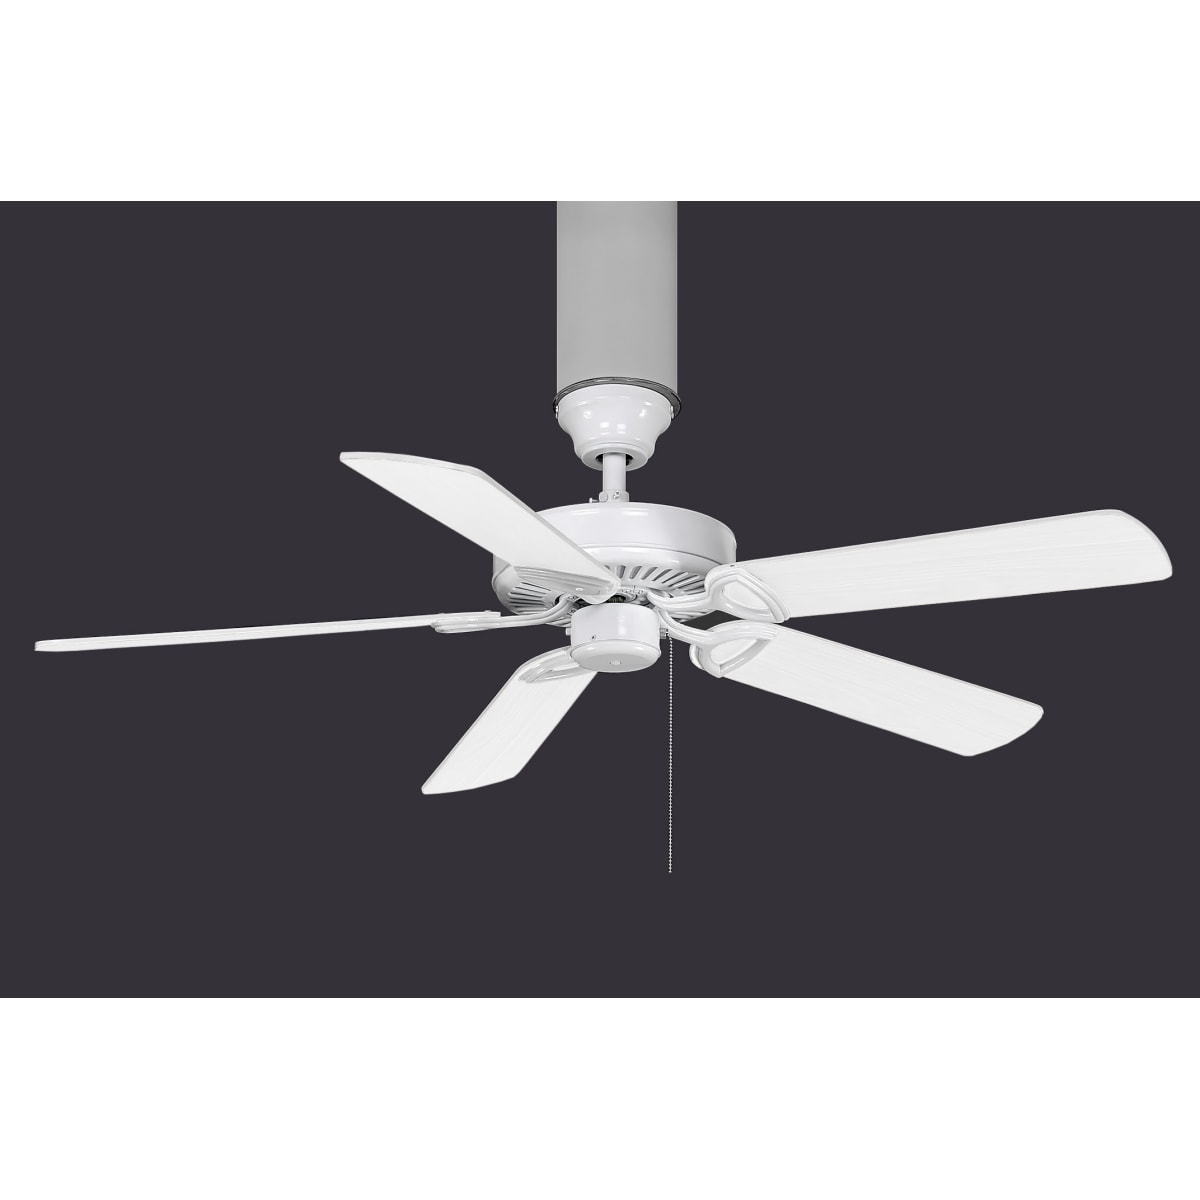 Atlas AM-TW-WH America Ceiling Fan in Gloss White with Reversible White/Wood Tone blades